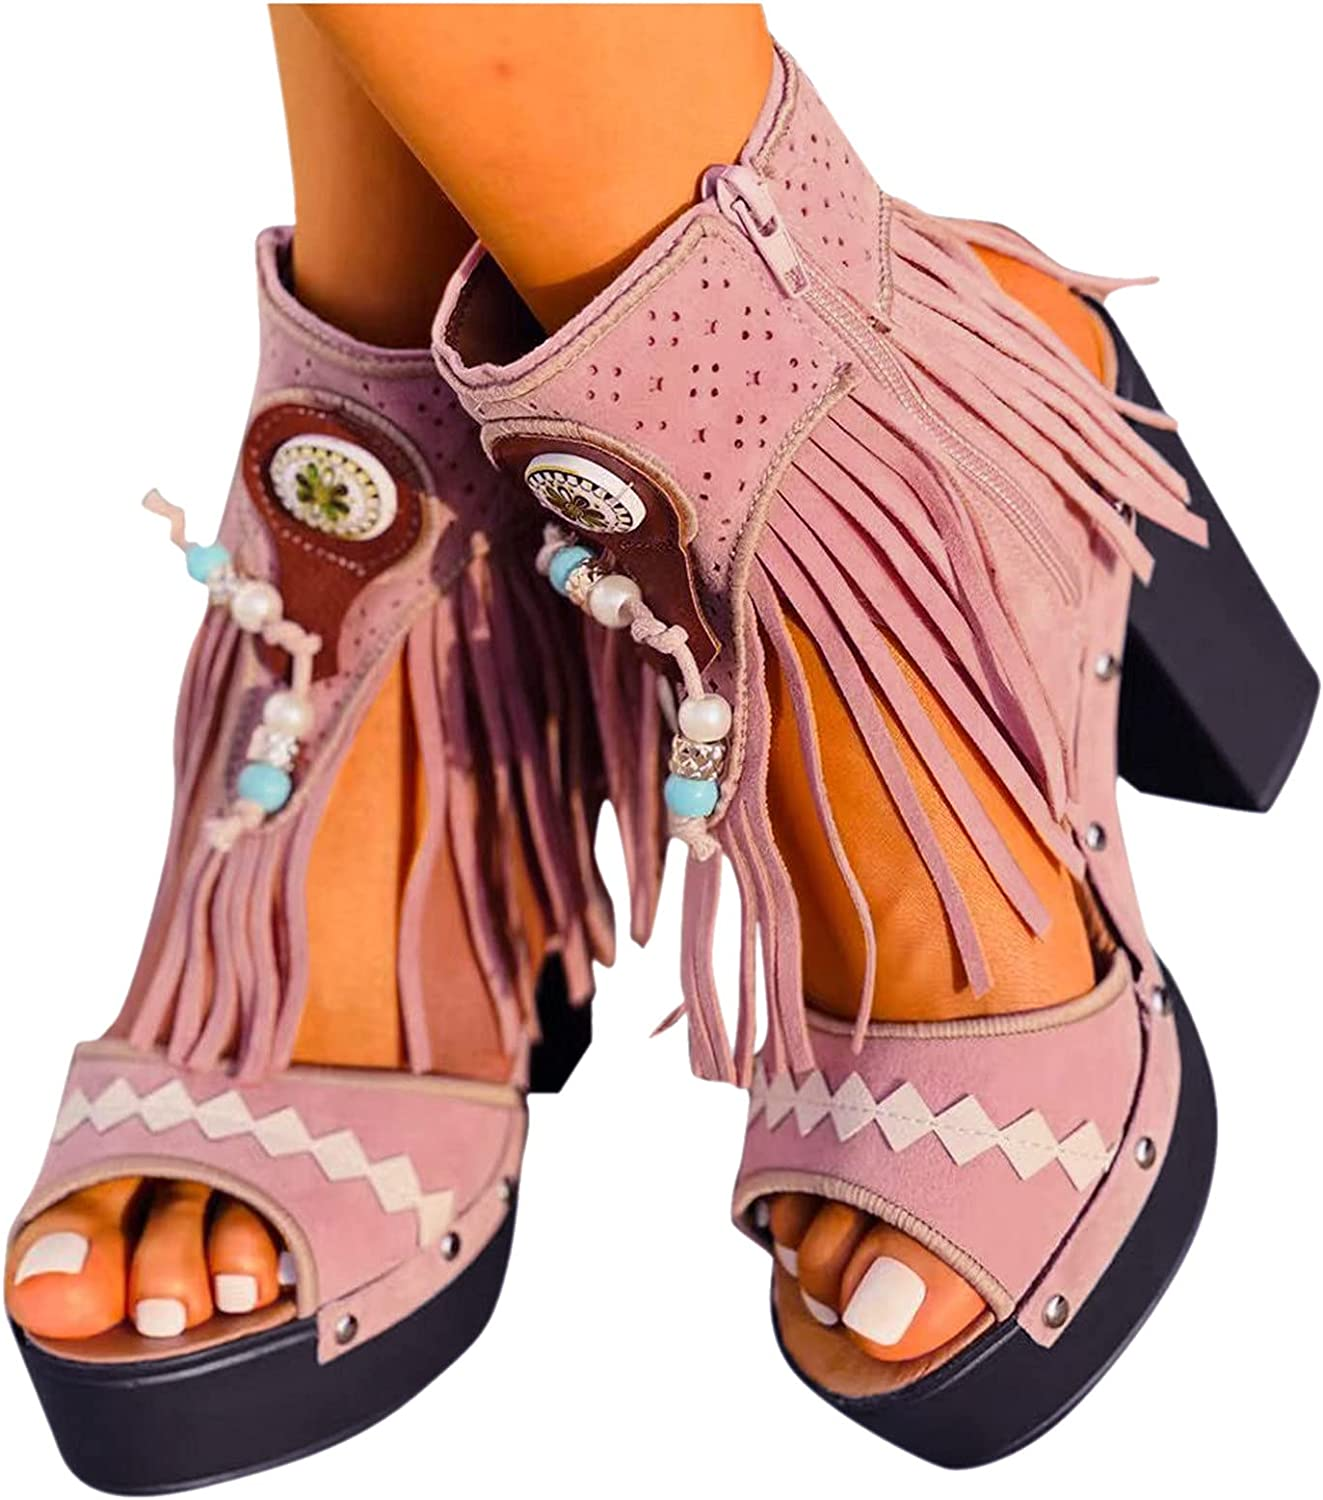 AIHOU Sandals for Women Casual Bohemian Tassels H Chunky 1 year warranty Summer Year-end annual account